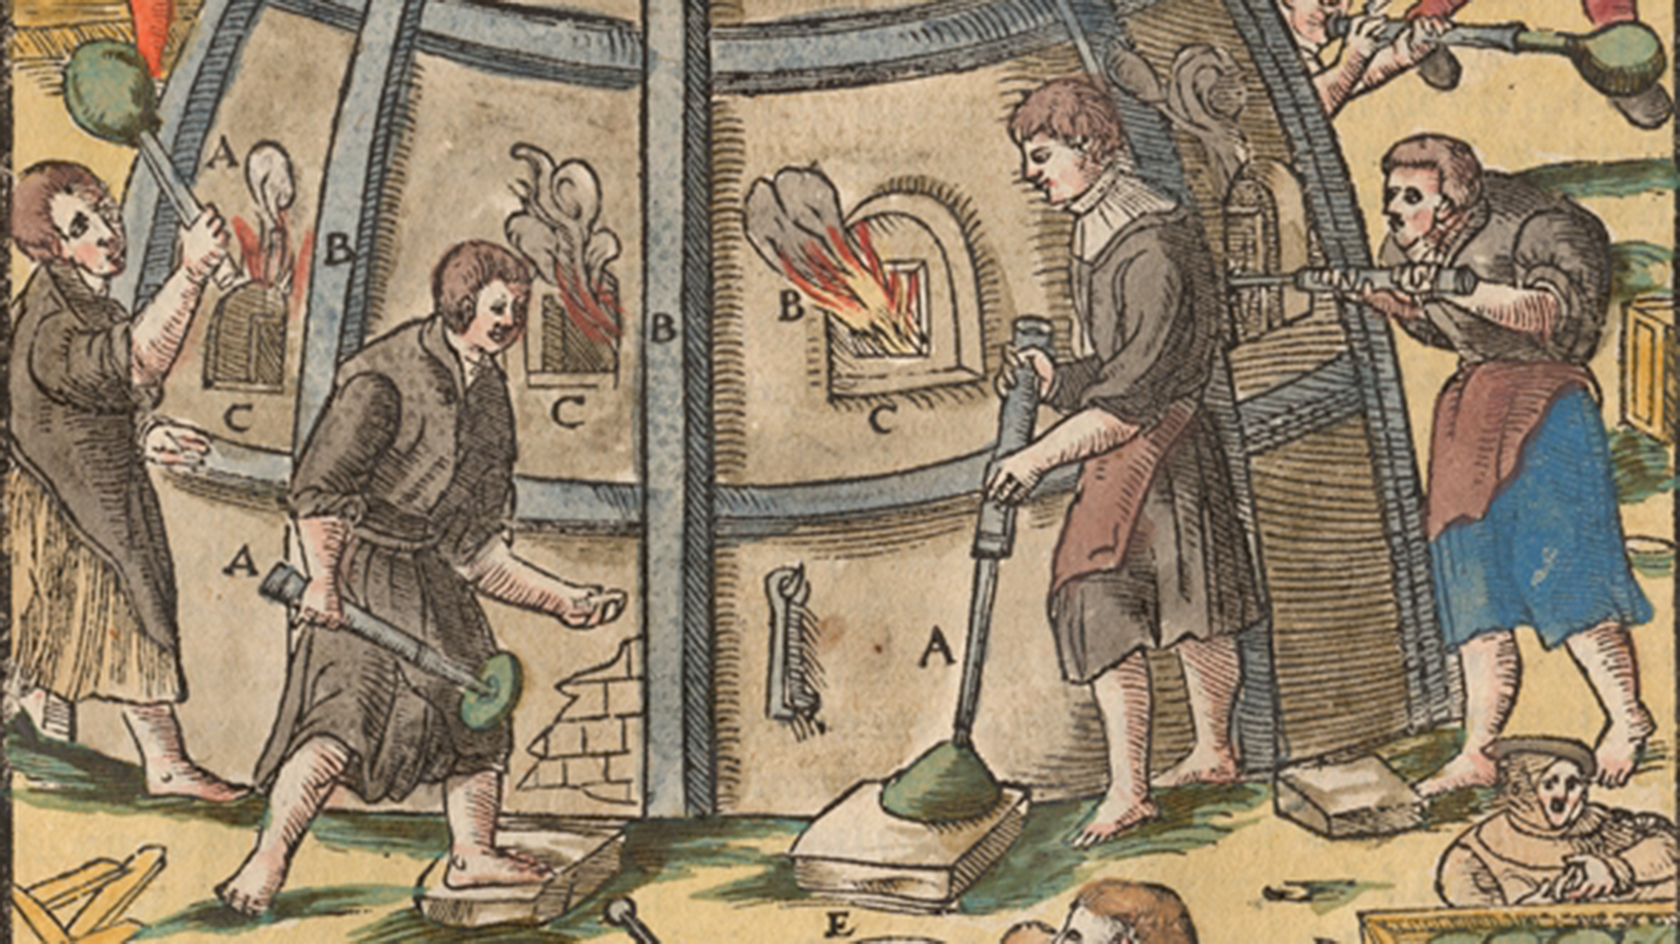 Woodcut of glass furnace from the Berchwerck Buch (detail), Georg Agricola (1494-1555), Frankfurt-on-Main, 1580. Gift of Mrs. Lucille Strauss. CMGL 66820.